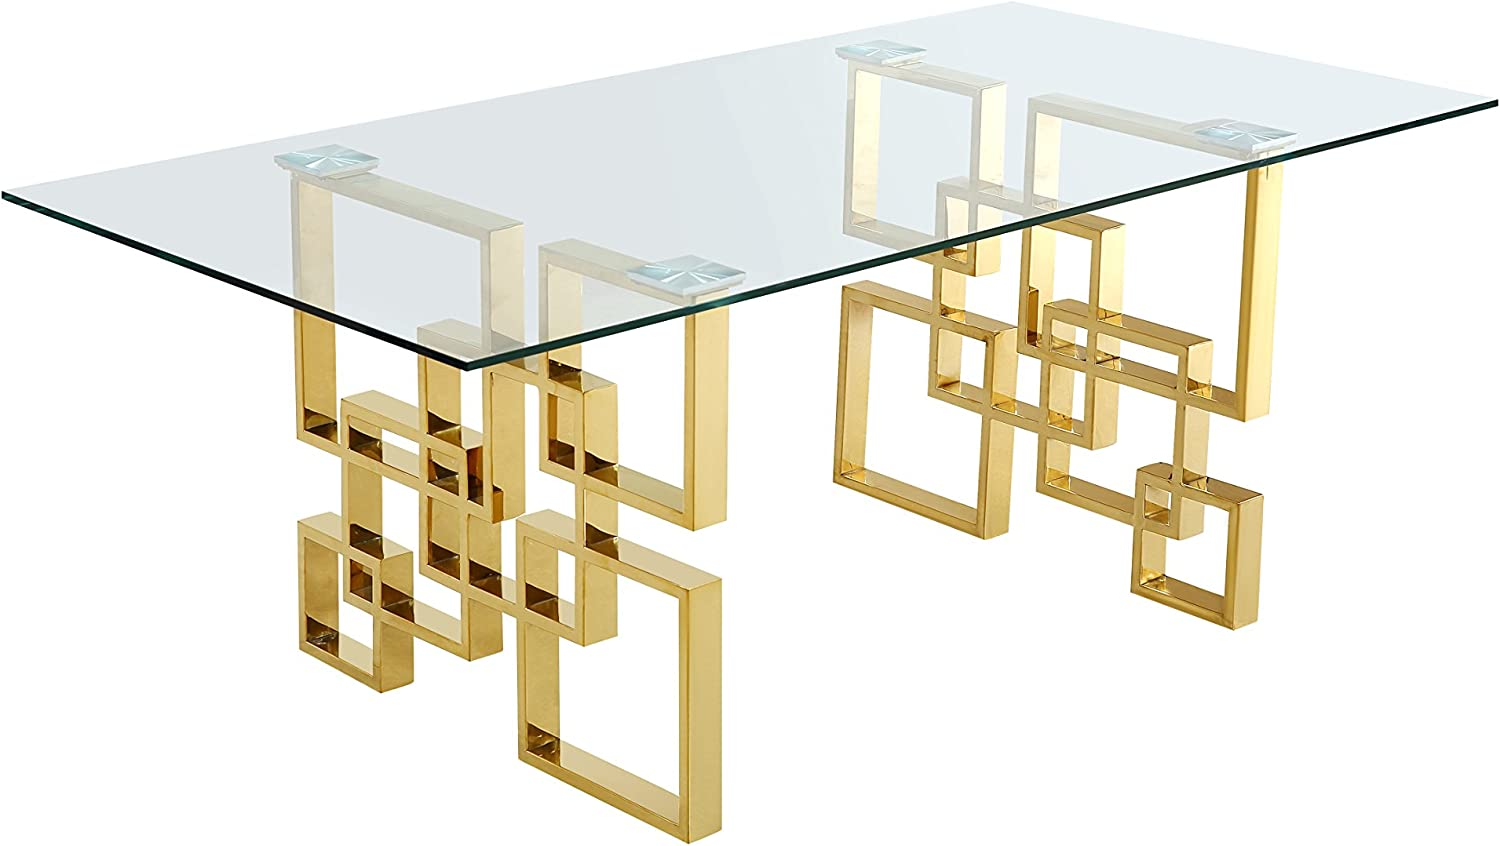 Meridian Furniture Pierre Collection Modern Contemporary Square Glass Dining Table with Stainless Steel Base and Rich Gold Finish, 78 W x 39 D x 30 H